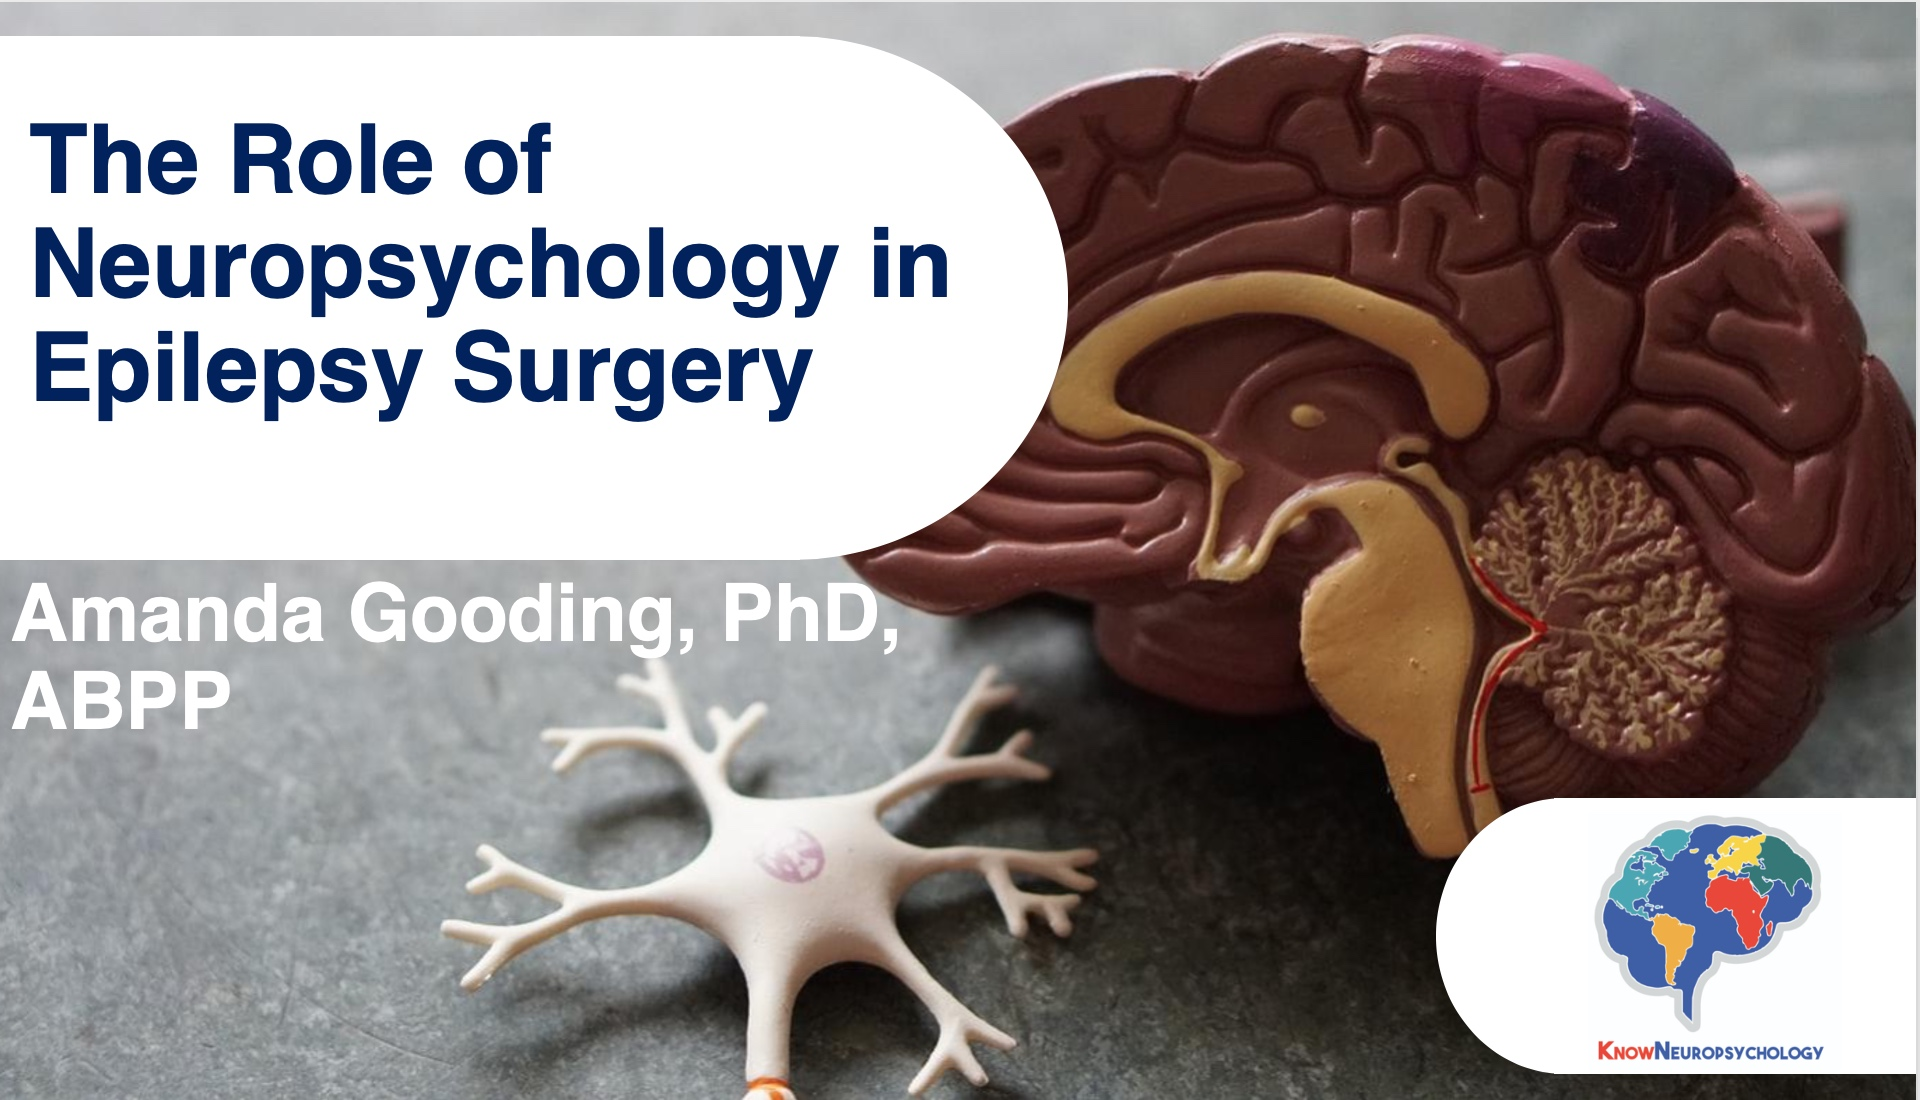 The role of neuropsychology in epilepsy surgery lecture recording